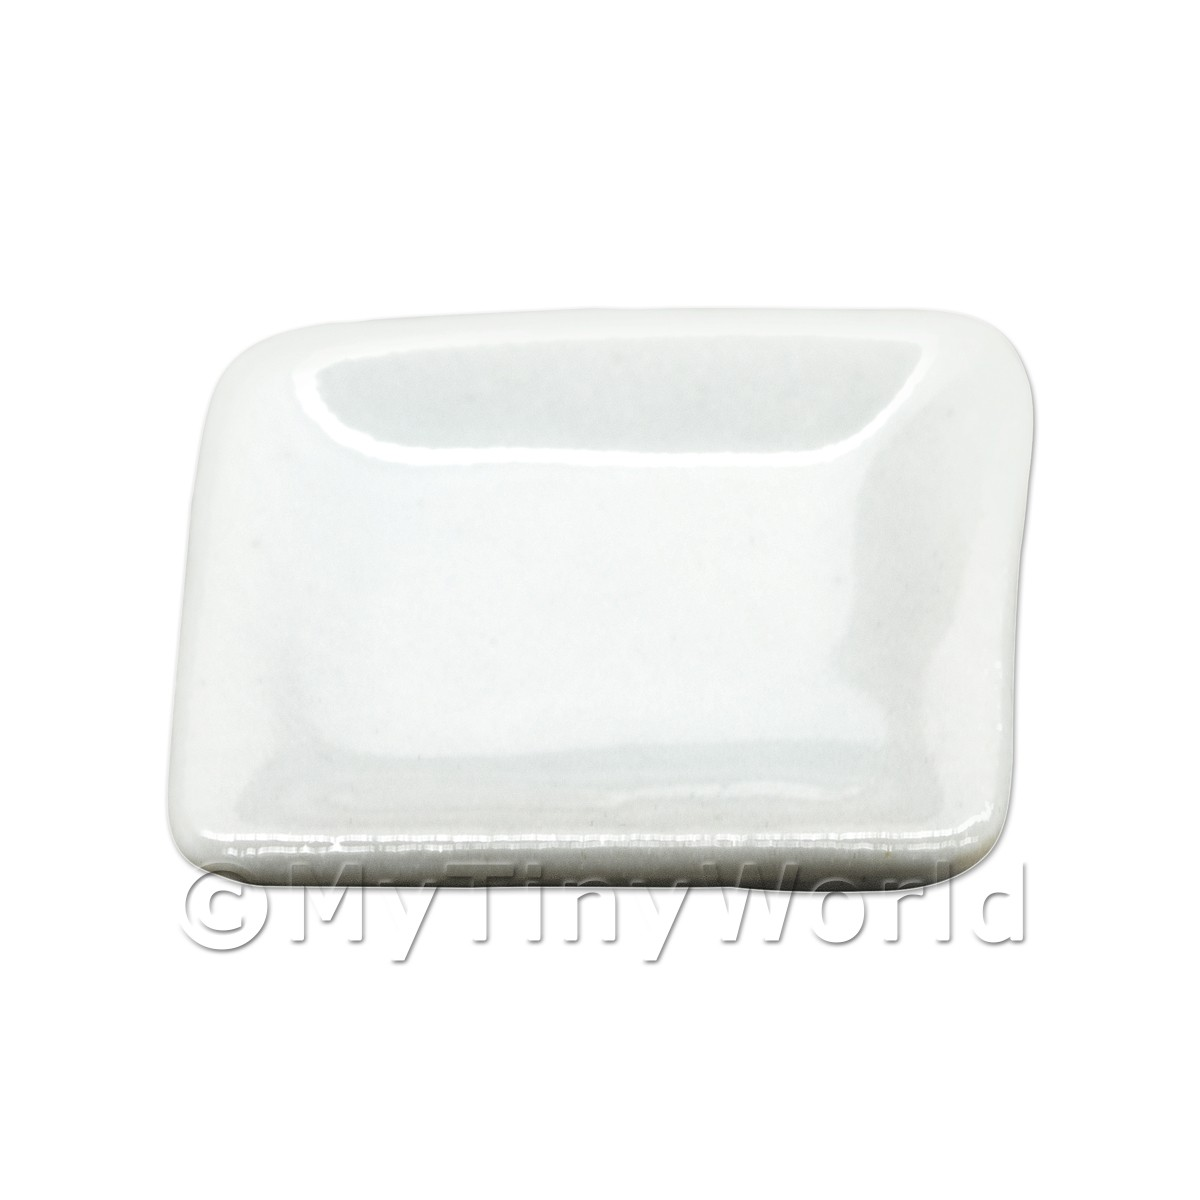 20mm Dolls House Miniature White Glazed Ceramic Square Plate